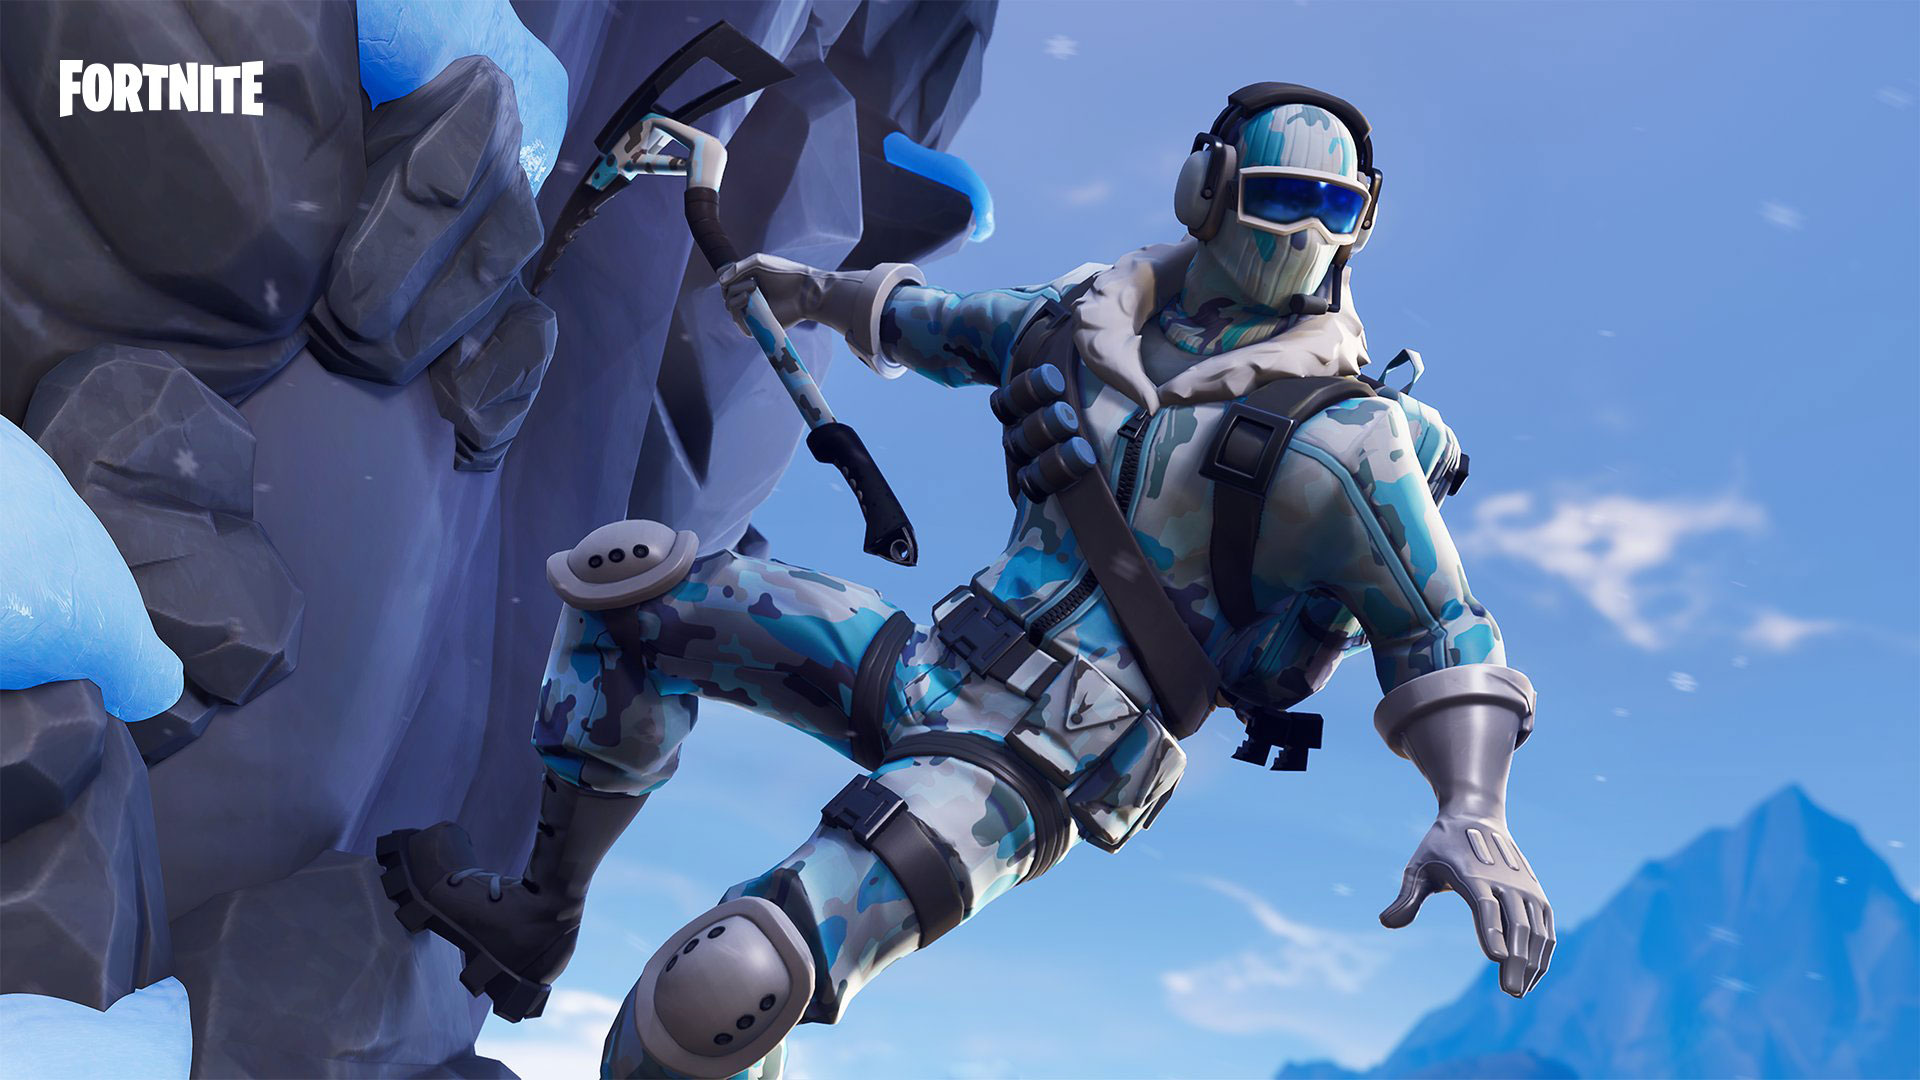 Fortnite Frostbite Skin   Outfit PNGs Images   Pro Game Guides 1920x1080